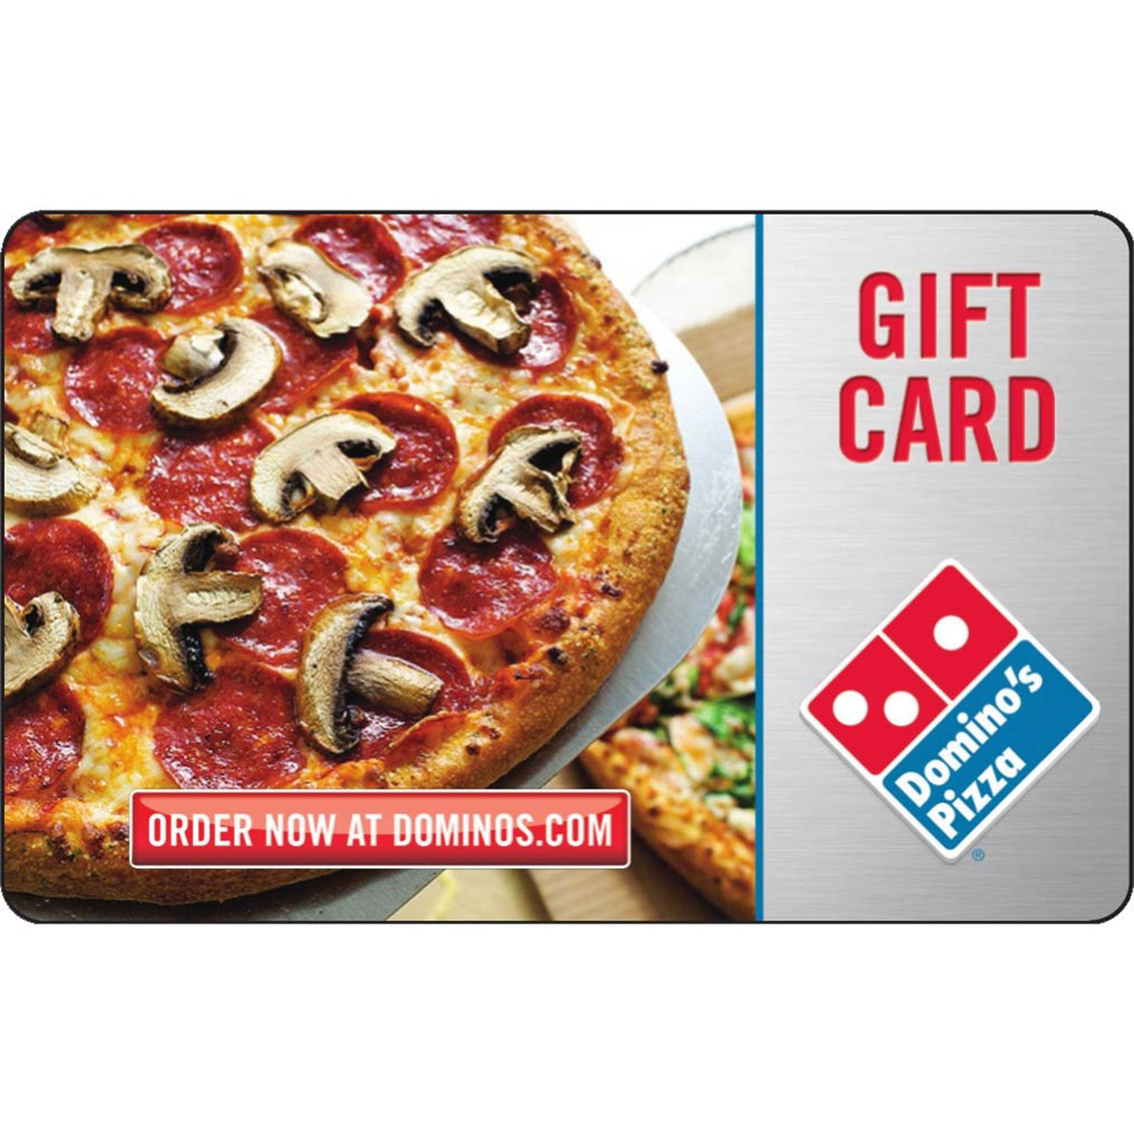 Dominos pizza gift card entertainment dining gifts food 0000 1betcityfo Image collections